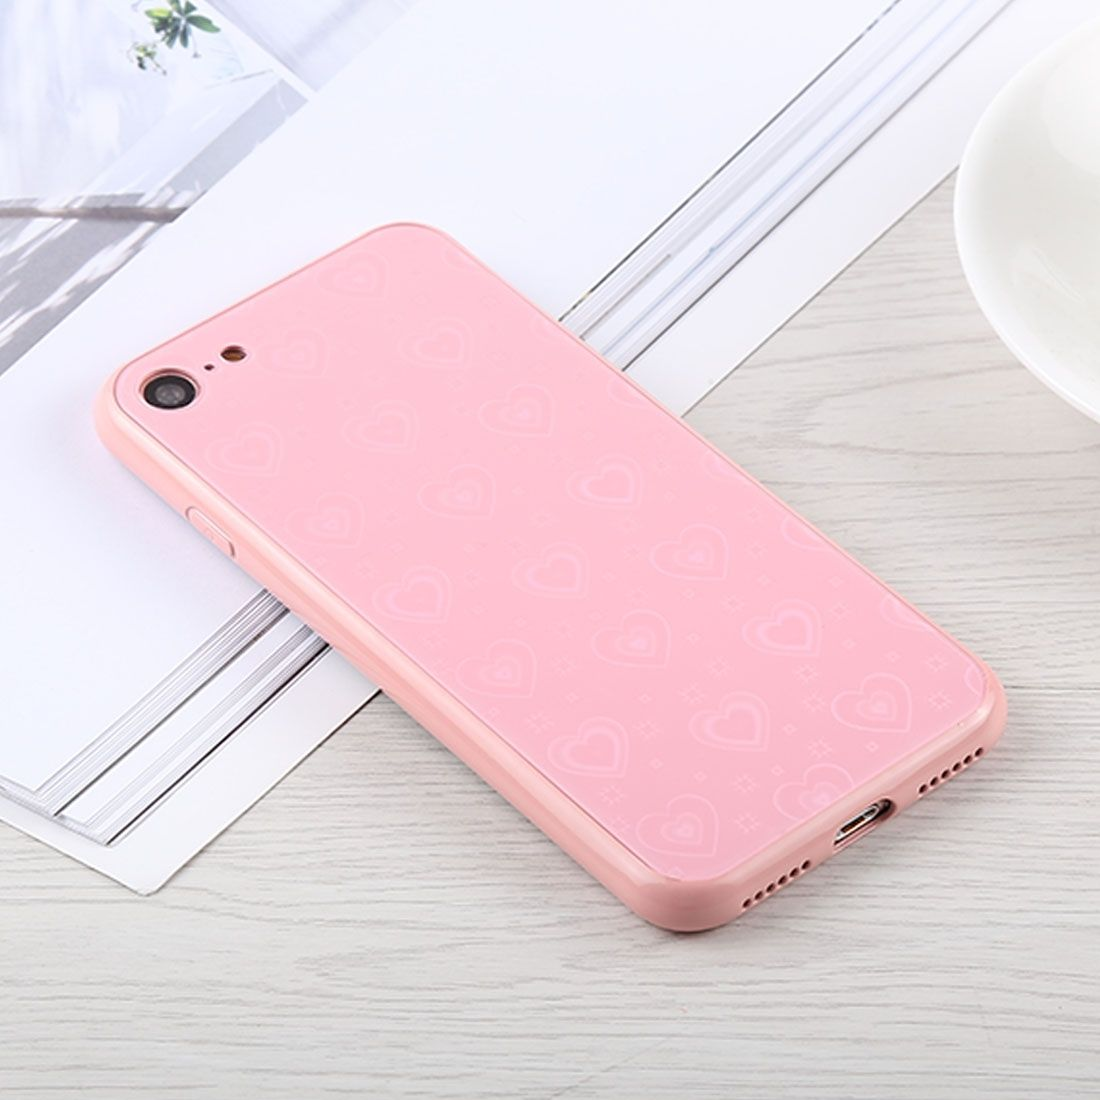 Speeed Hd Ultra Thin Glass Screen Protector For Blackberry Z30 Tempered Premium 9h Untuk Lenovo A7000clear Universal Fashion Heart Pattern Anti Scratch Gradient Color Protection Case Iphone 8 7 Pink